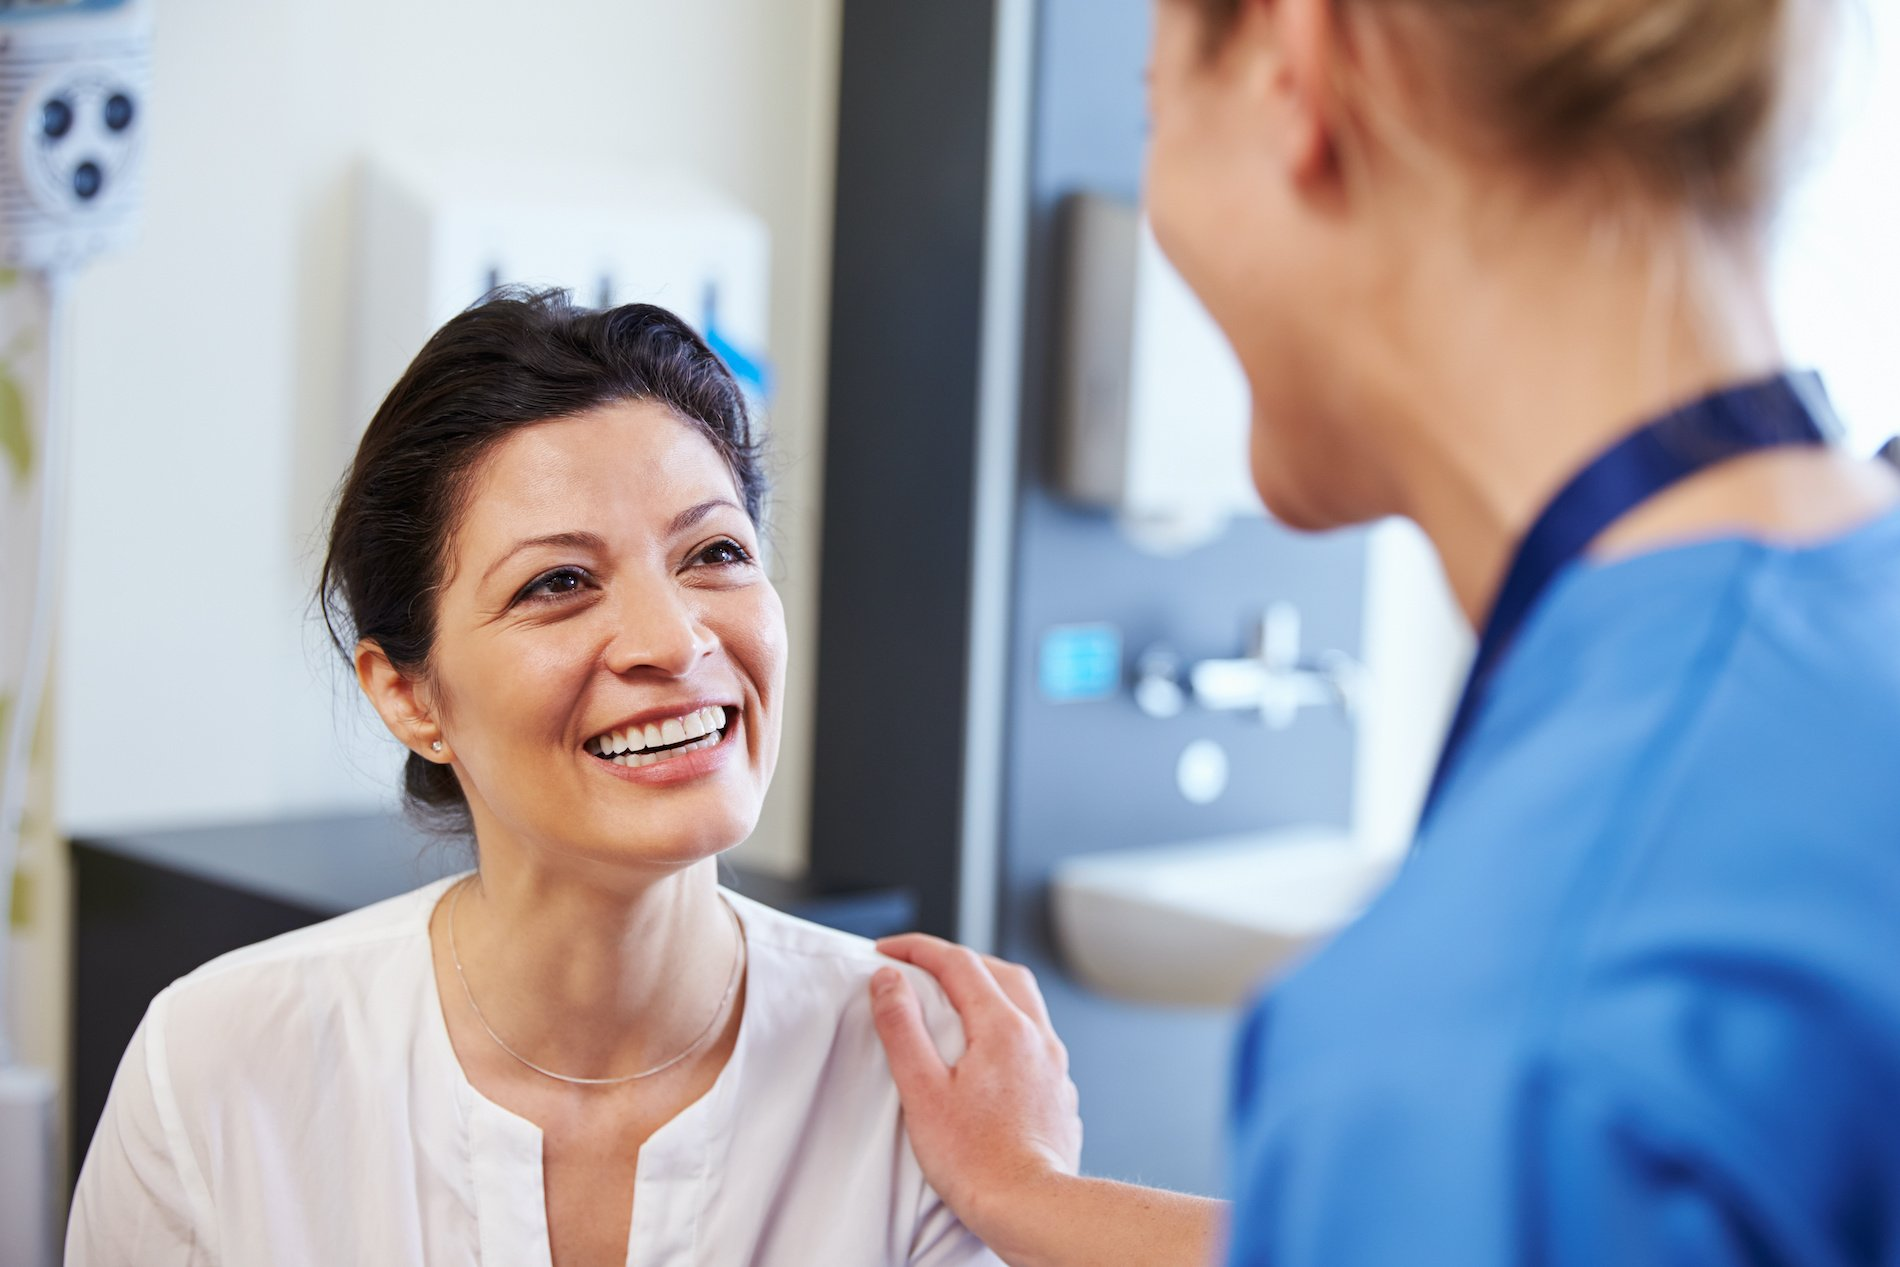 Consult with a Smile Specialist at PRECiDENT.health